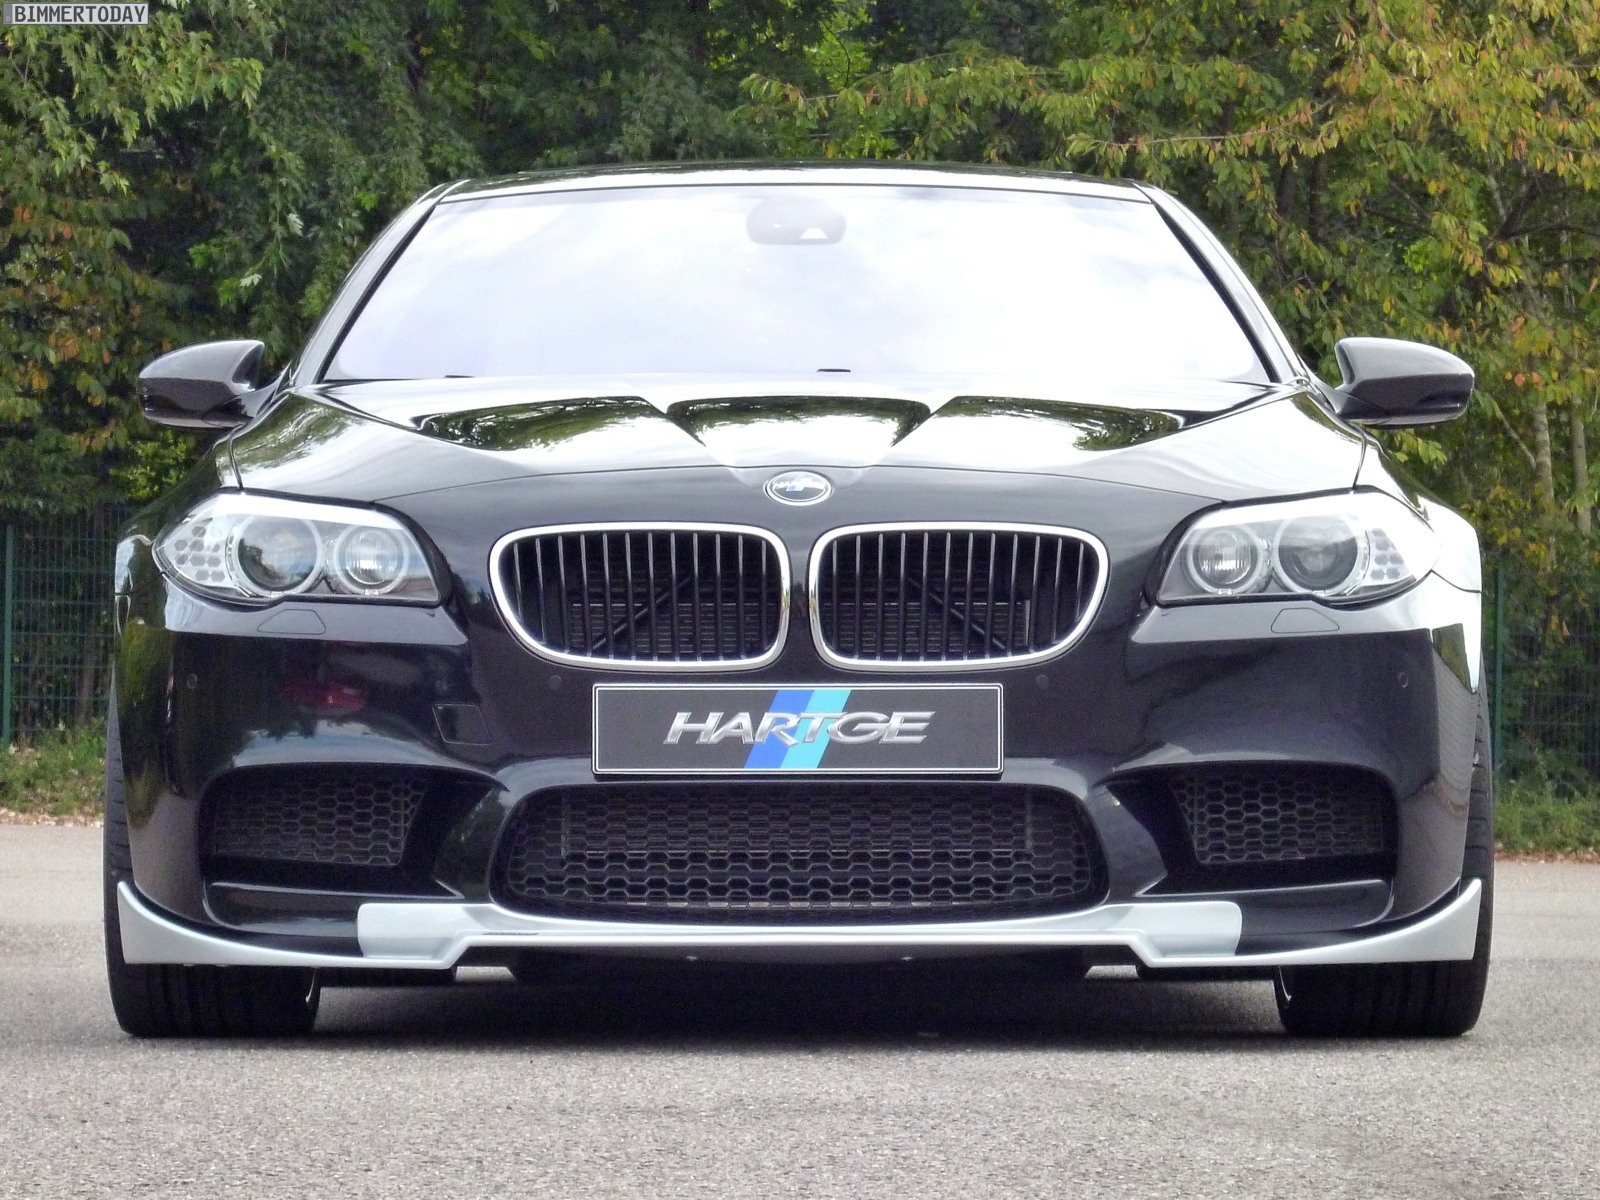 BMW M5 by Hartge